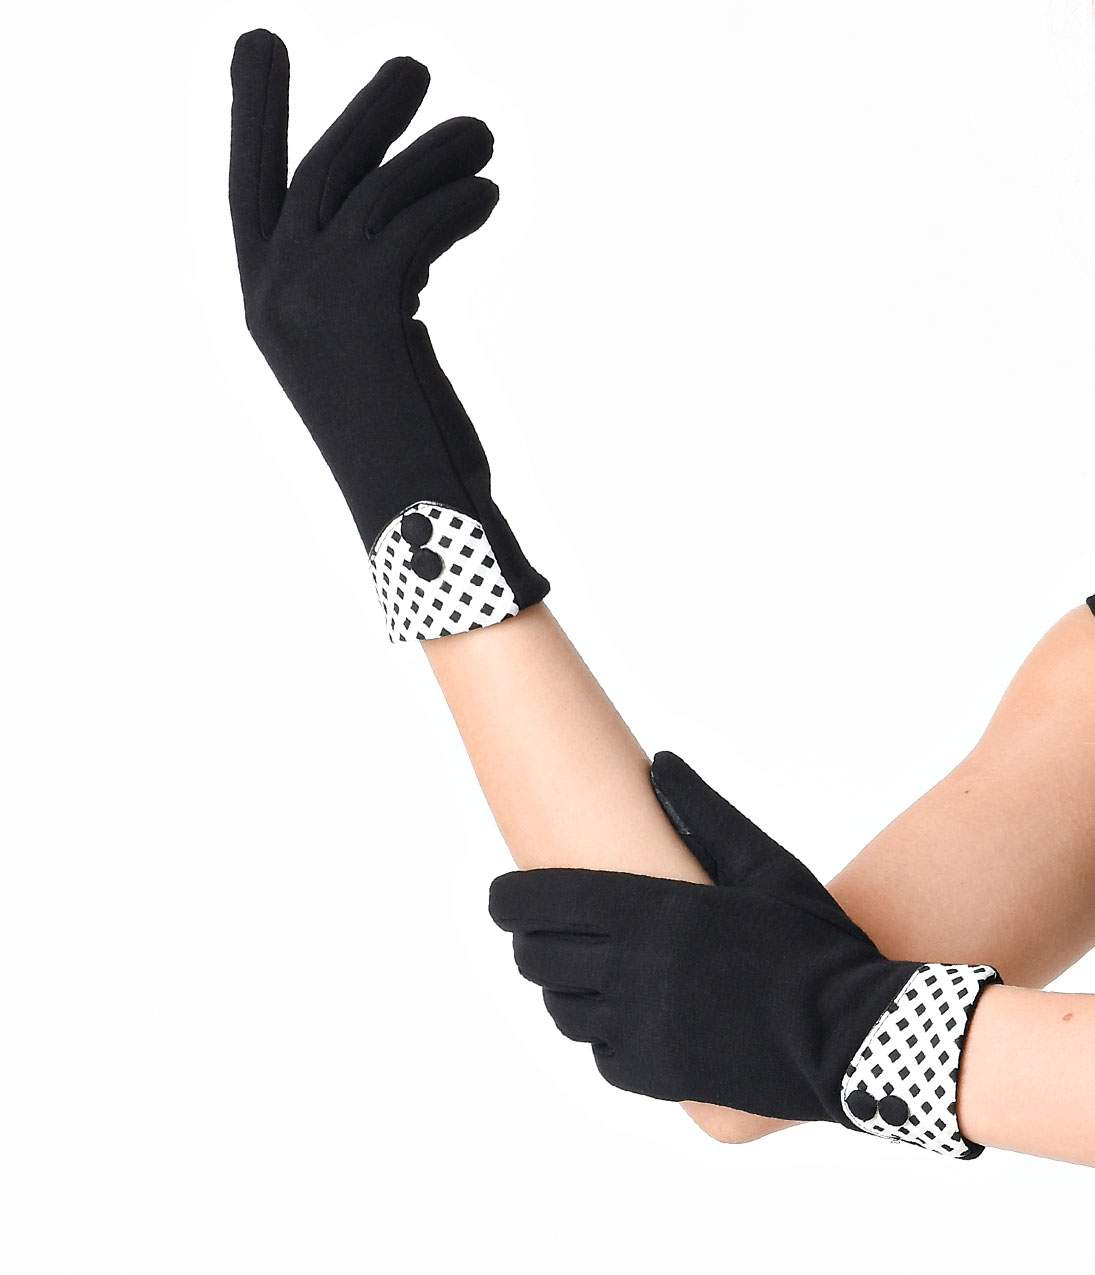 Vintage Gloves – Styles from 1900 to 1960s Black Wrist Length Button Gingham Texting Gloves $18.00 AT vintagedancer.com